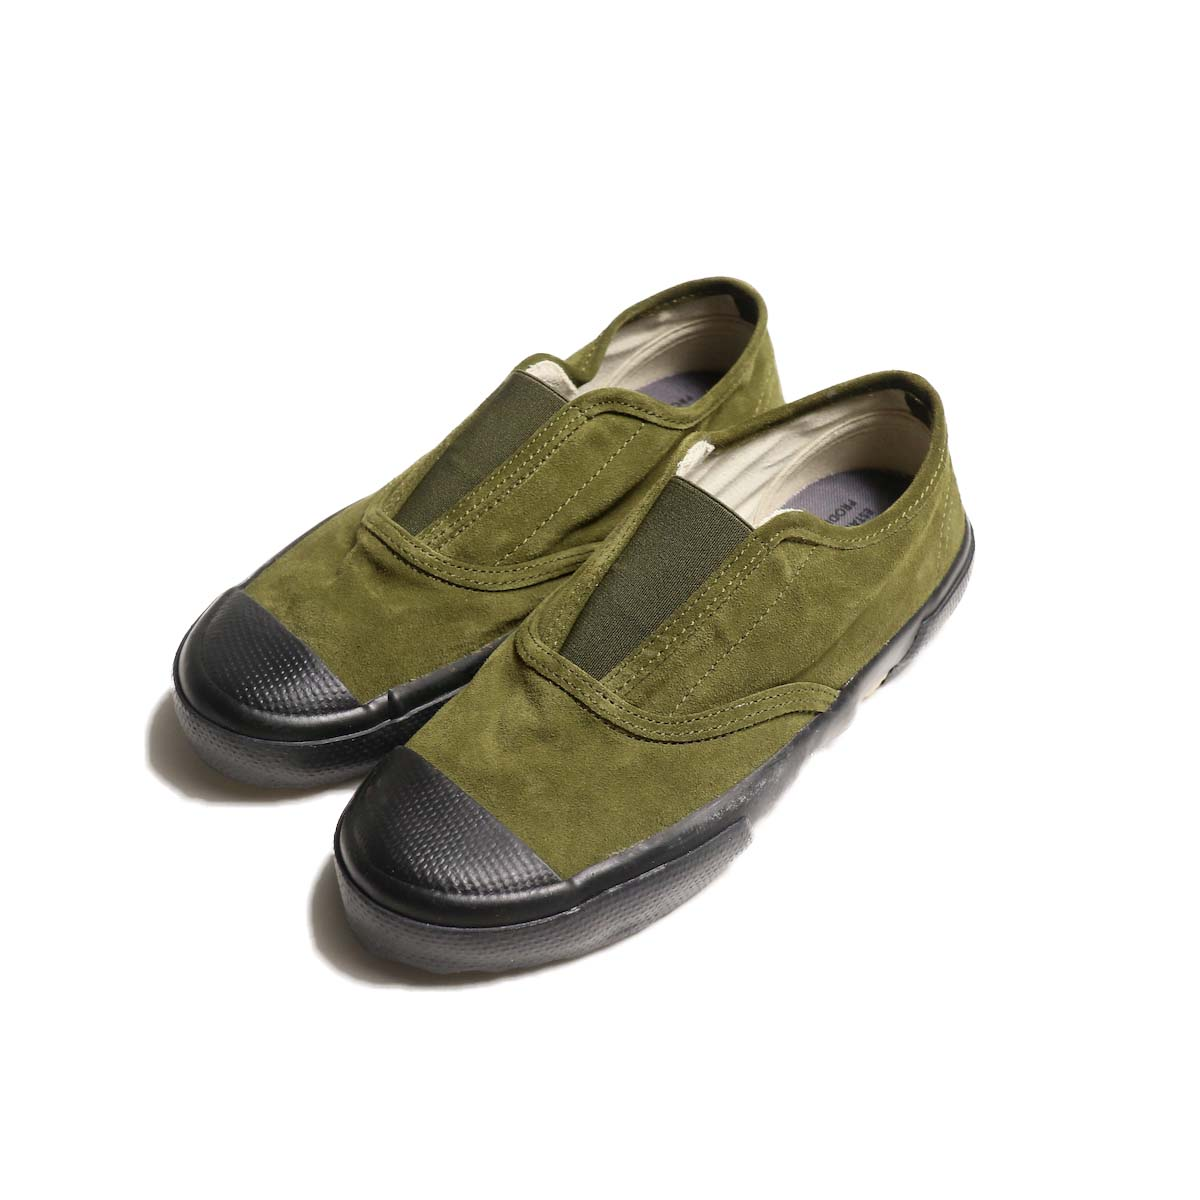 REPRODUCTION OF FOUND / ITALIAN MILITARY TRAINER (Olive Suede / Black Sole)